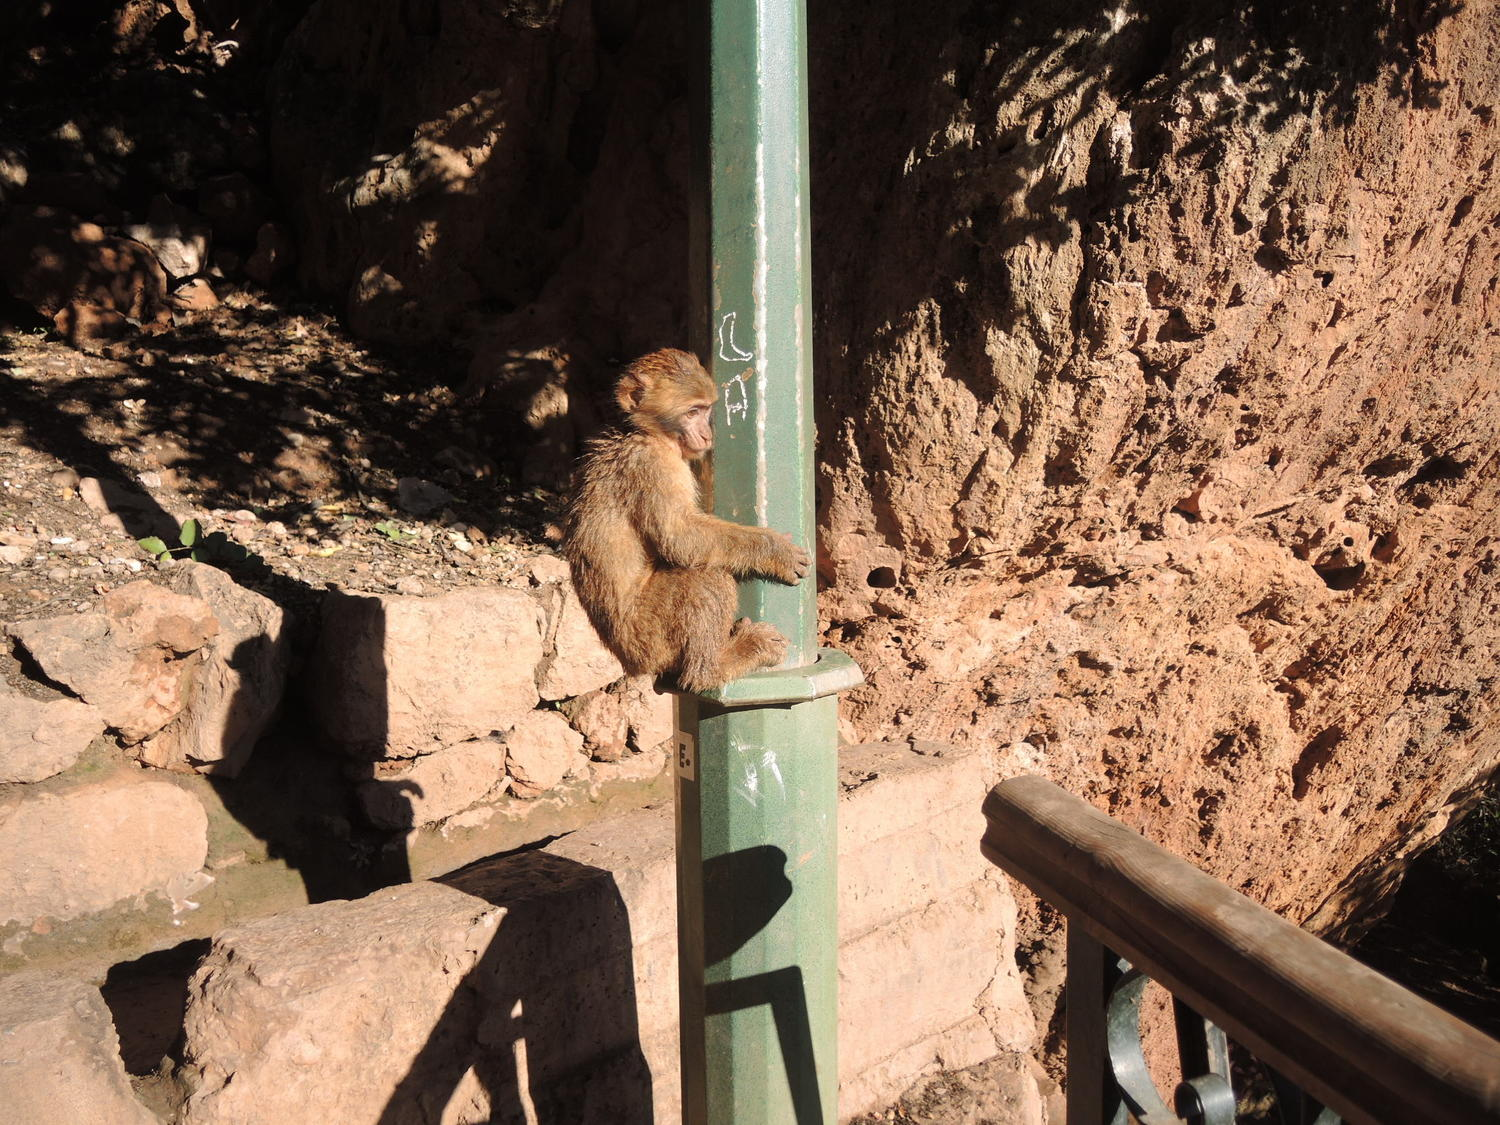 Monkeys near the Ouzoud waterfalls